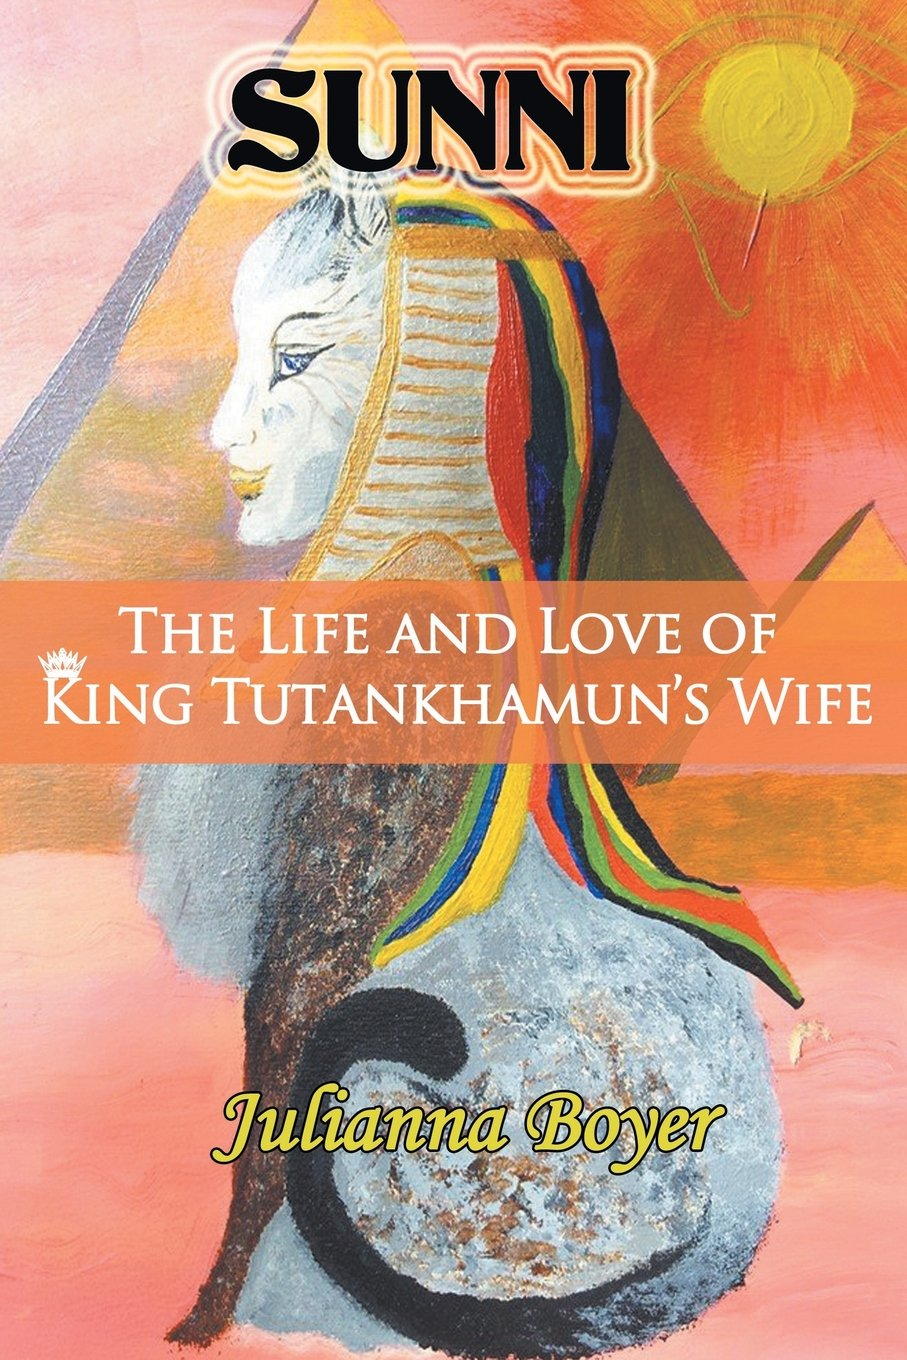 Download Sunni: The Life and Love of King Tutankhamun's Wife ebook